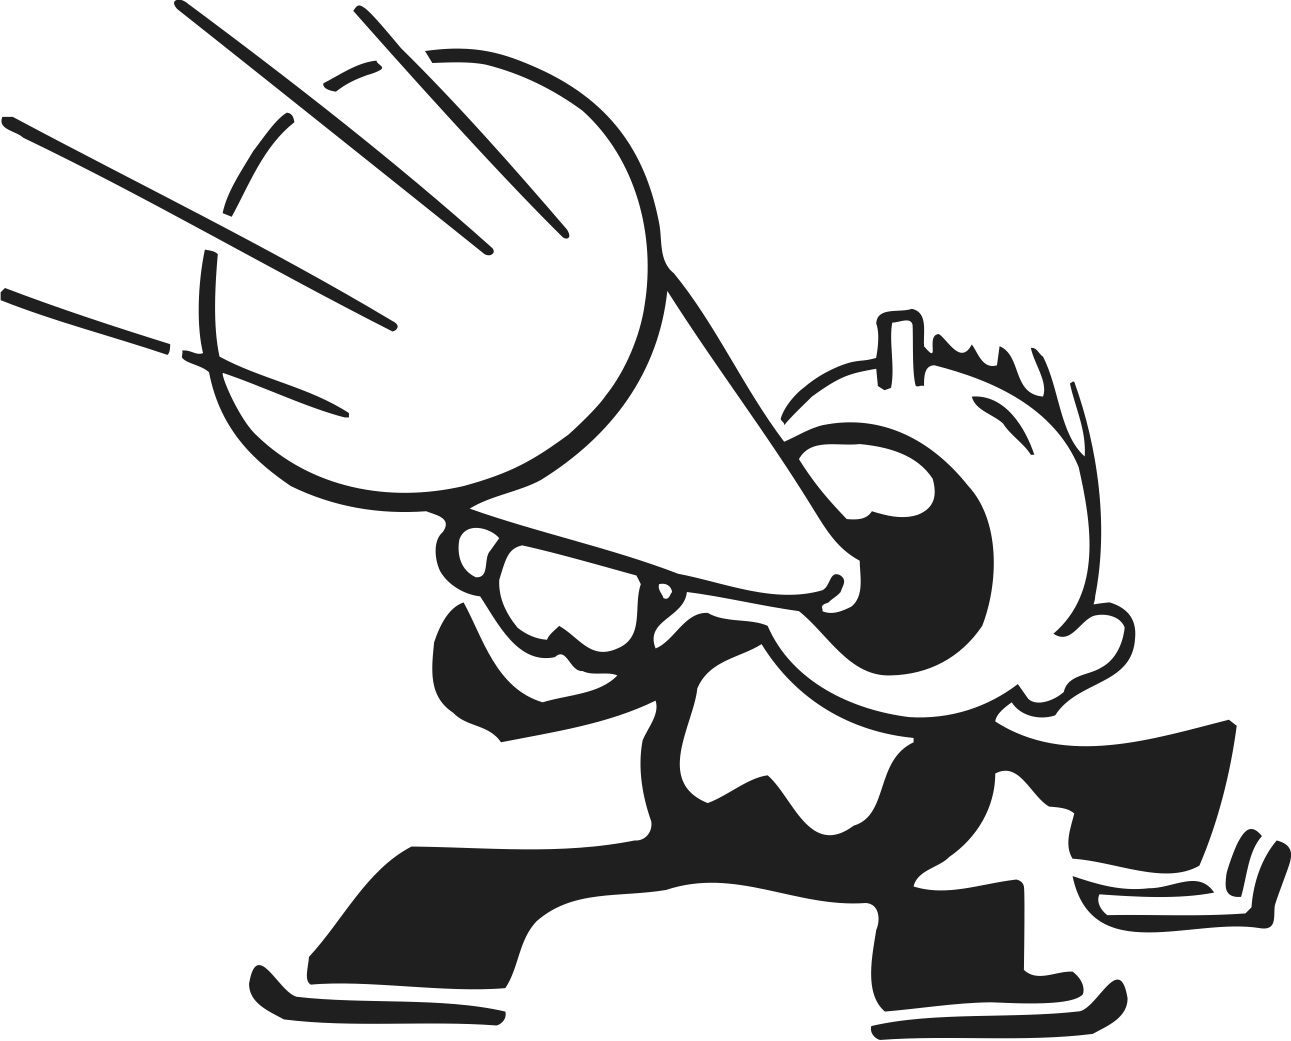 Megaphone clipart #3, Download drawings